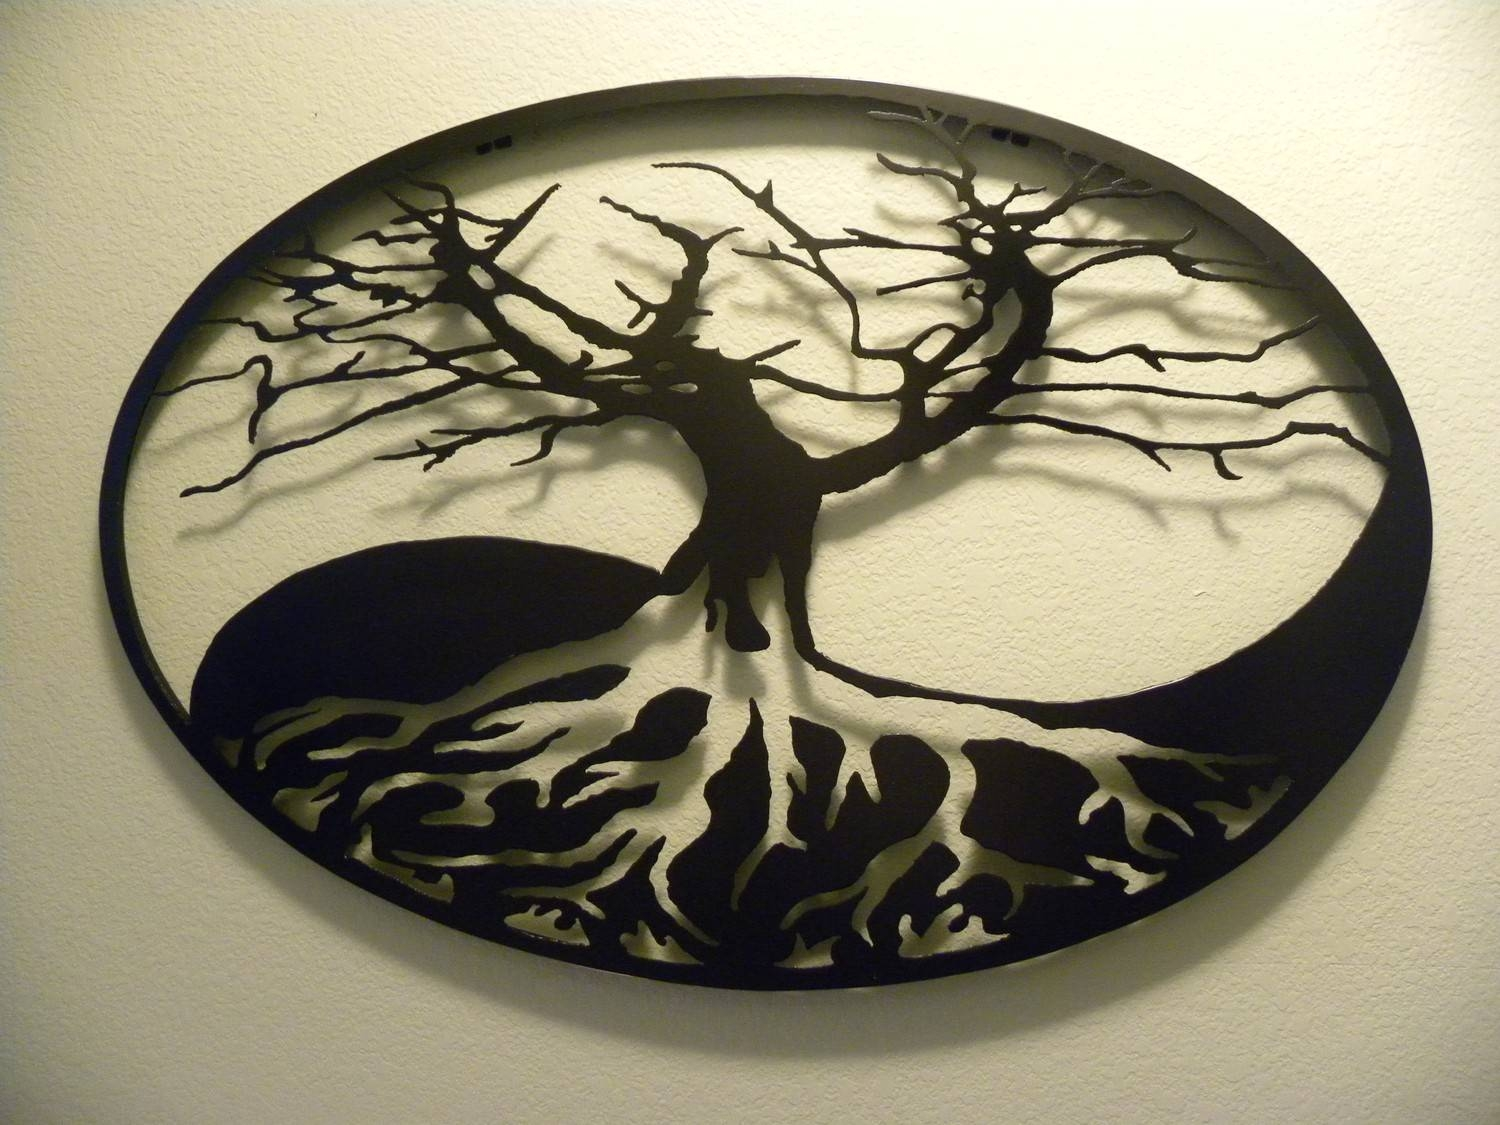 Oval Yin Yang Tree Of Life Metal Wall Art Intended For Most Popular Tree Of Life Metal Wall Art (View 12 of 20)